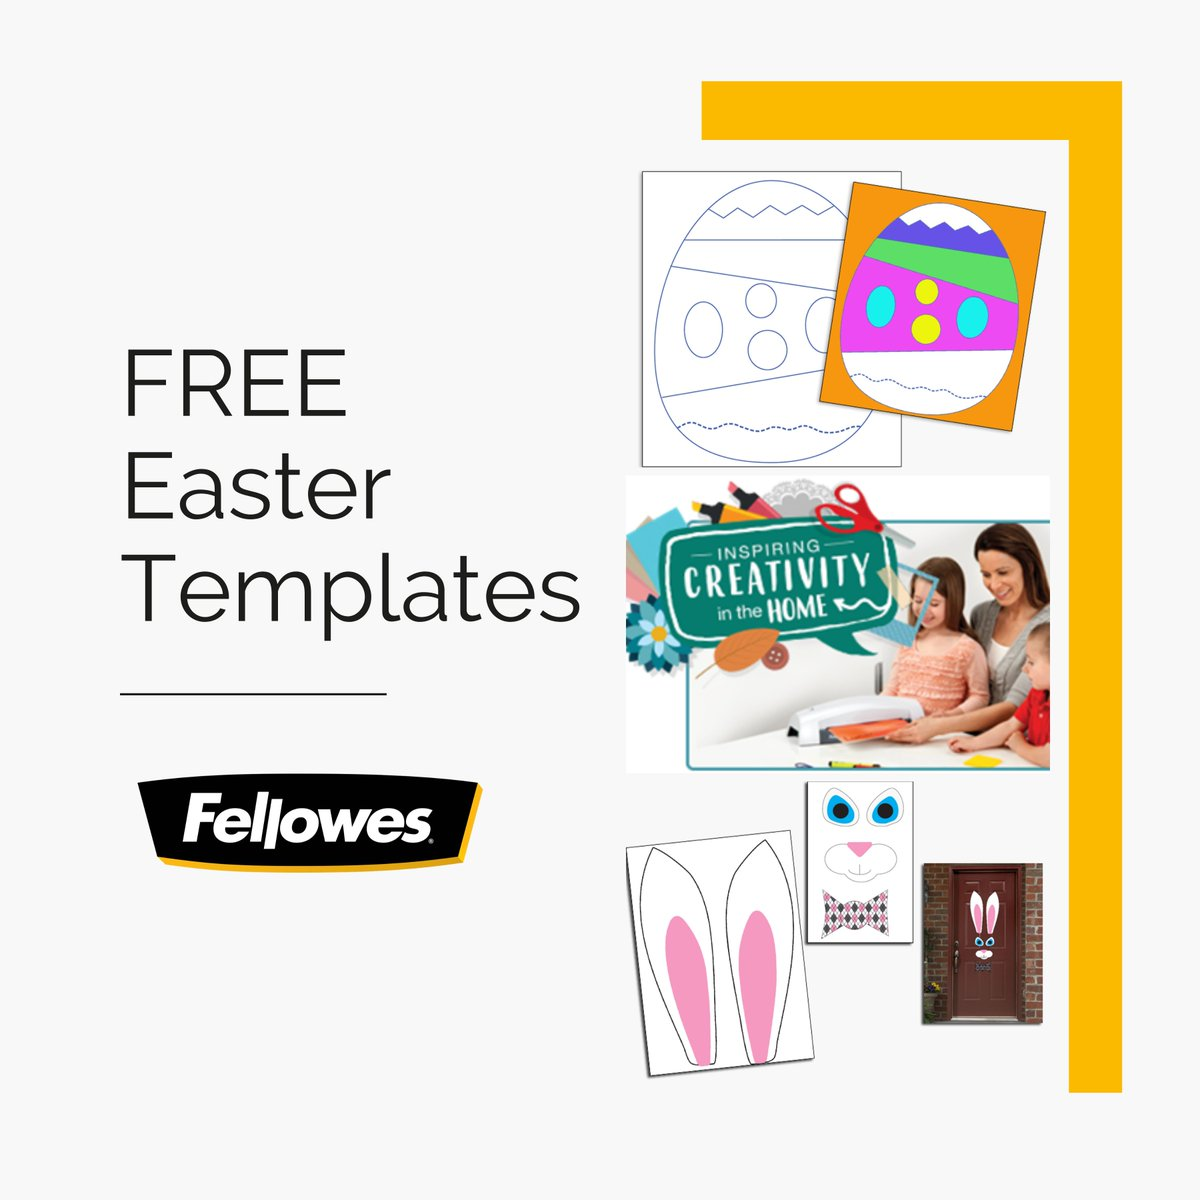 Keep the Fun Going this 🐰Easter with our FREE creative Easter laminating projects.  ⬇️ Download  🖨️ Print ✂️ Cut 👌 Laminate  .  👇Download and explore 100s of free ready-made resources and inspirational ideas on the Fellowes Ideas Centre. . . #Easter #DIY #HomeActivities